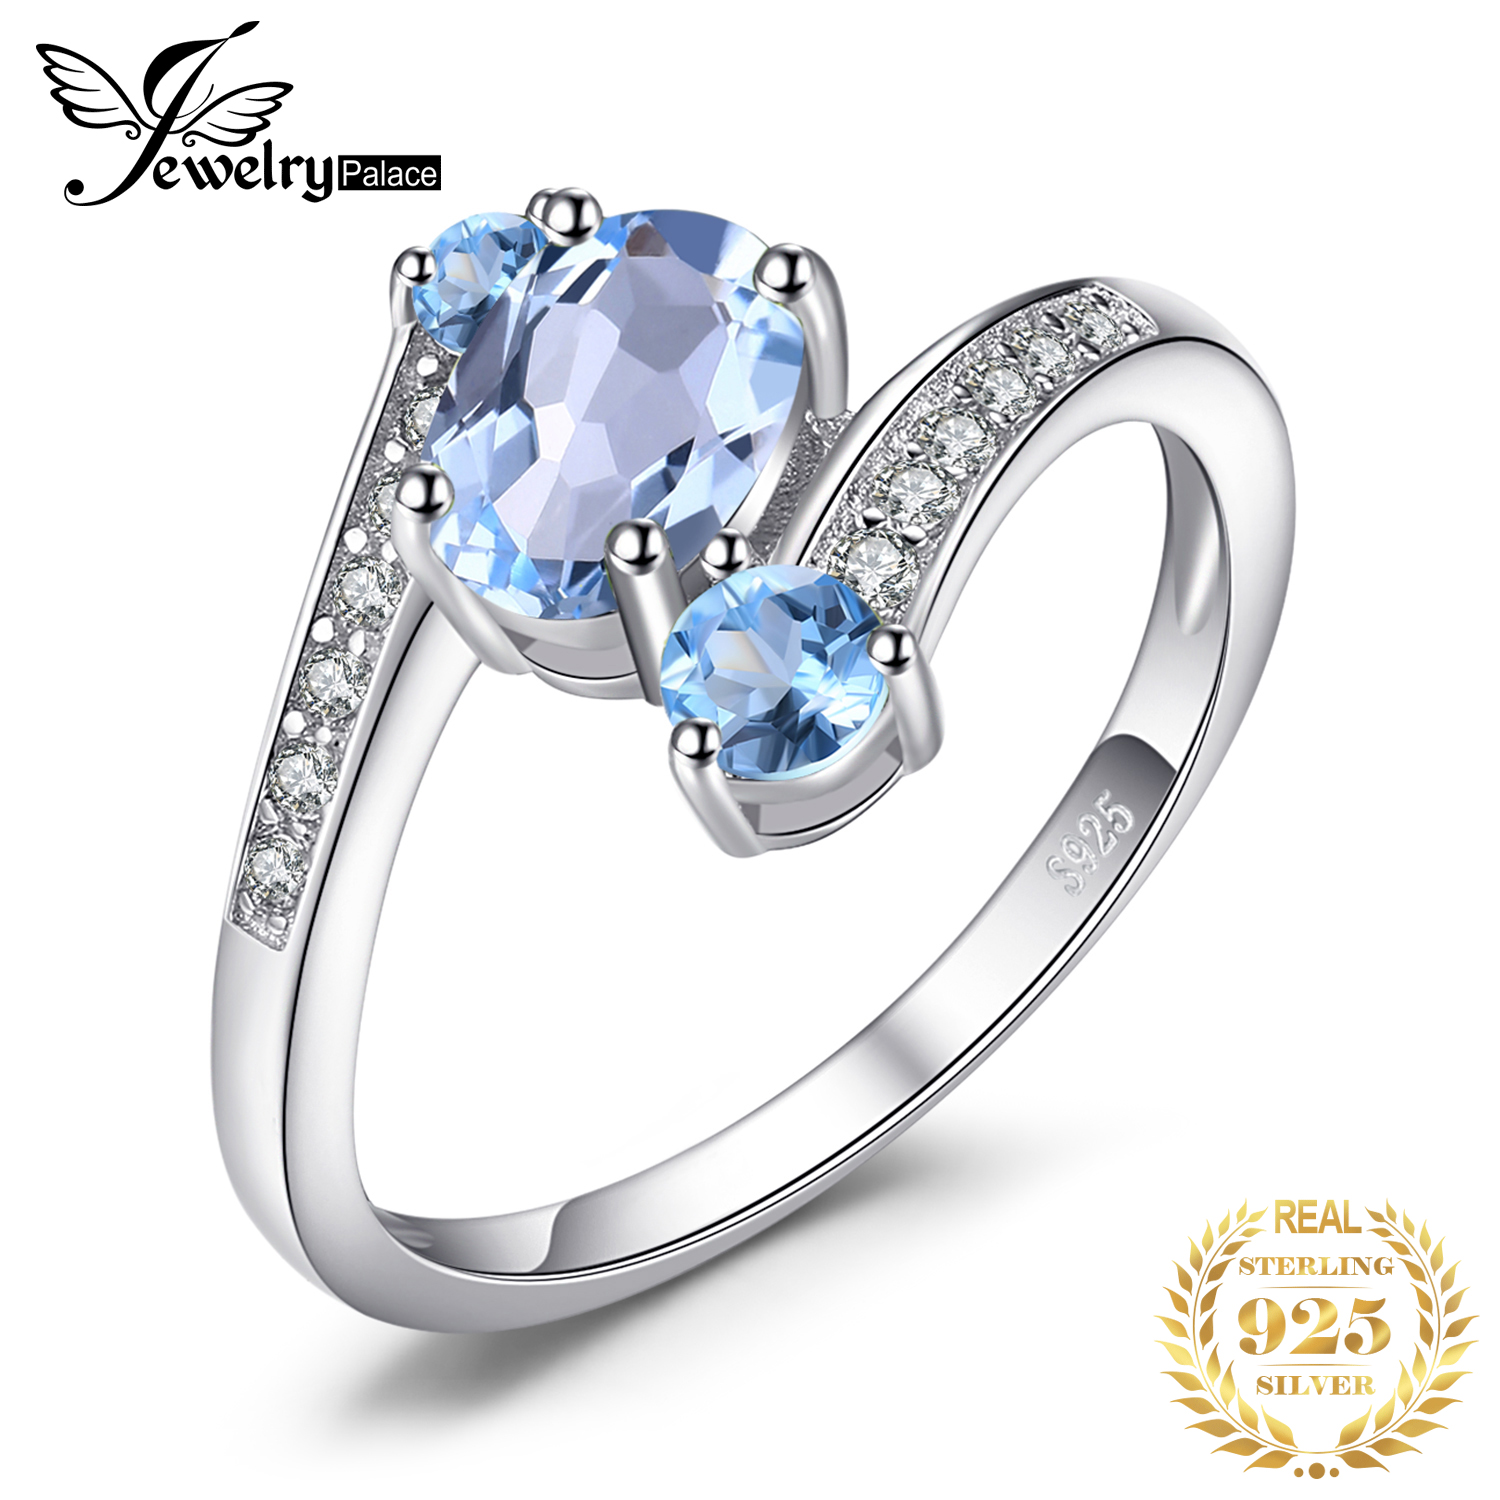 JewelryPalace 3 Stones Genuine Blue Topaz Ring 925 Sterling Silver Rings For Women Engagement Ring Silver 925 Gemstones Jewelry